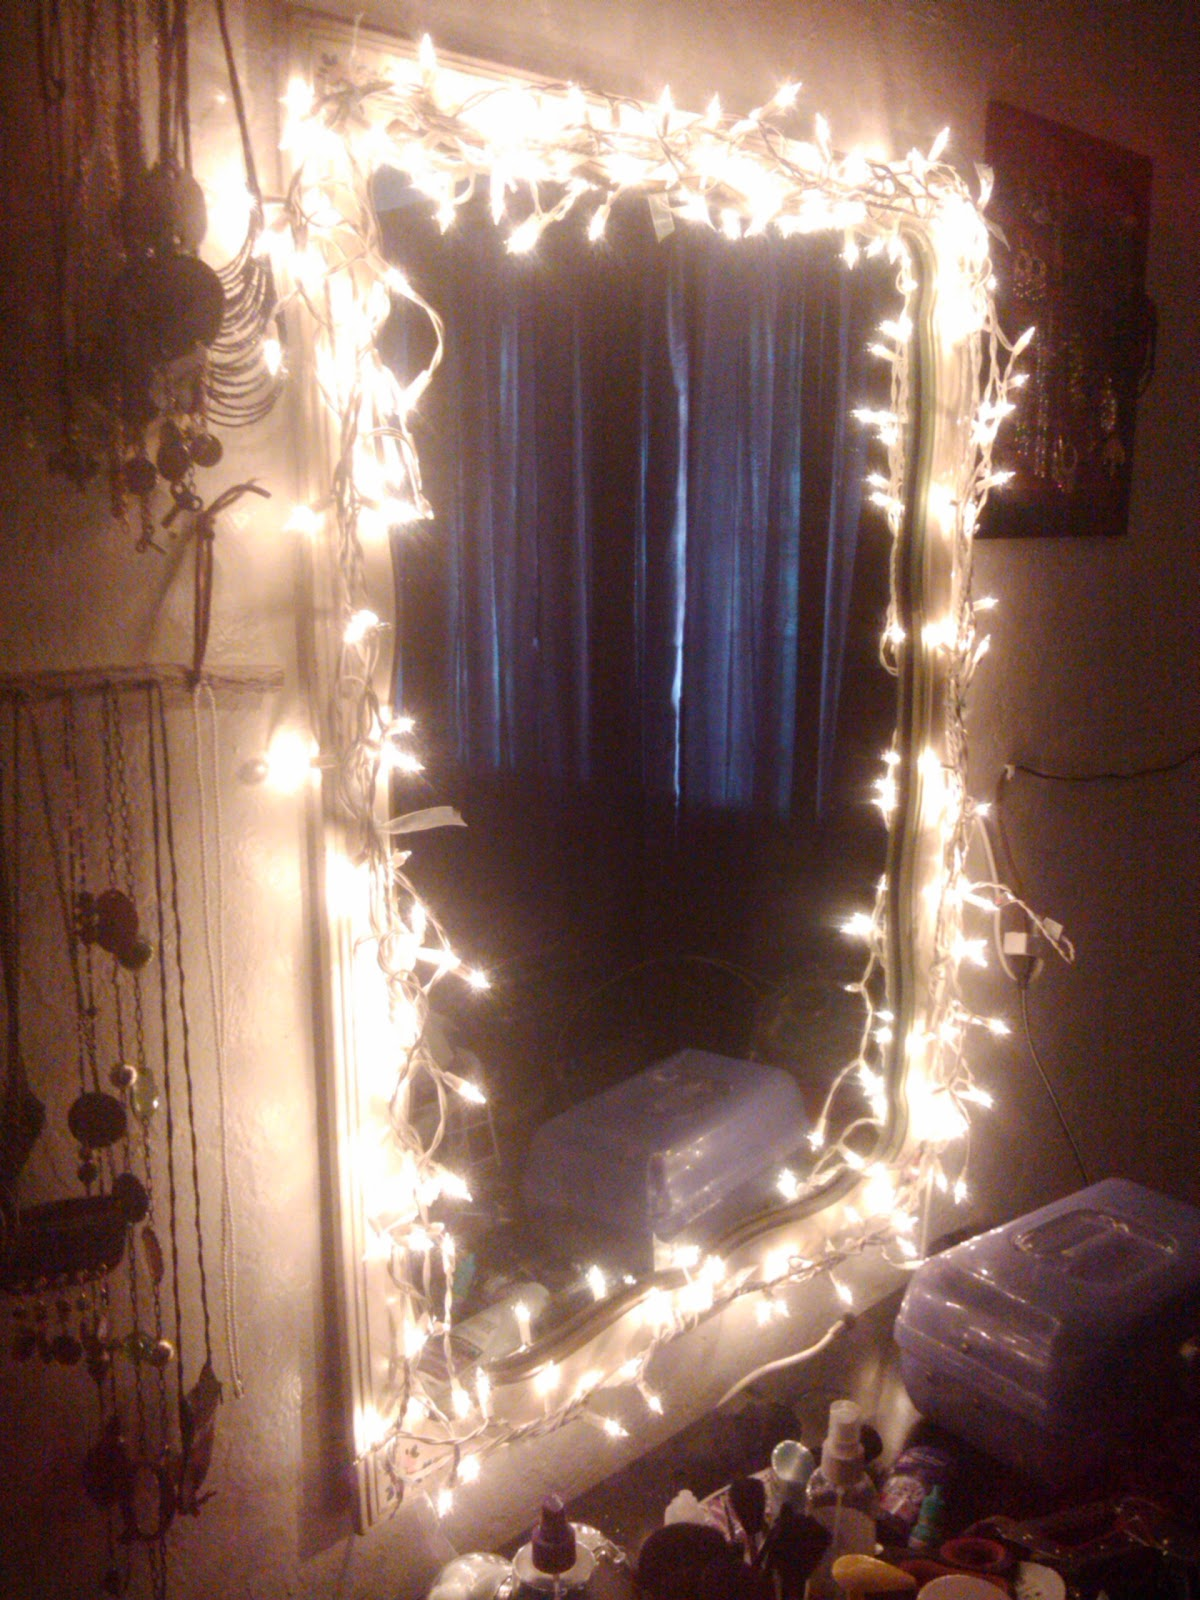 Vanity Mirror Lights Diy : Easy diy light up vanity mirror.